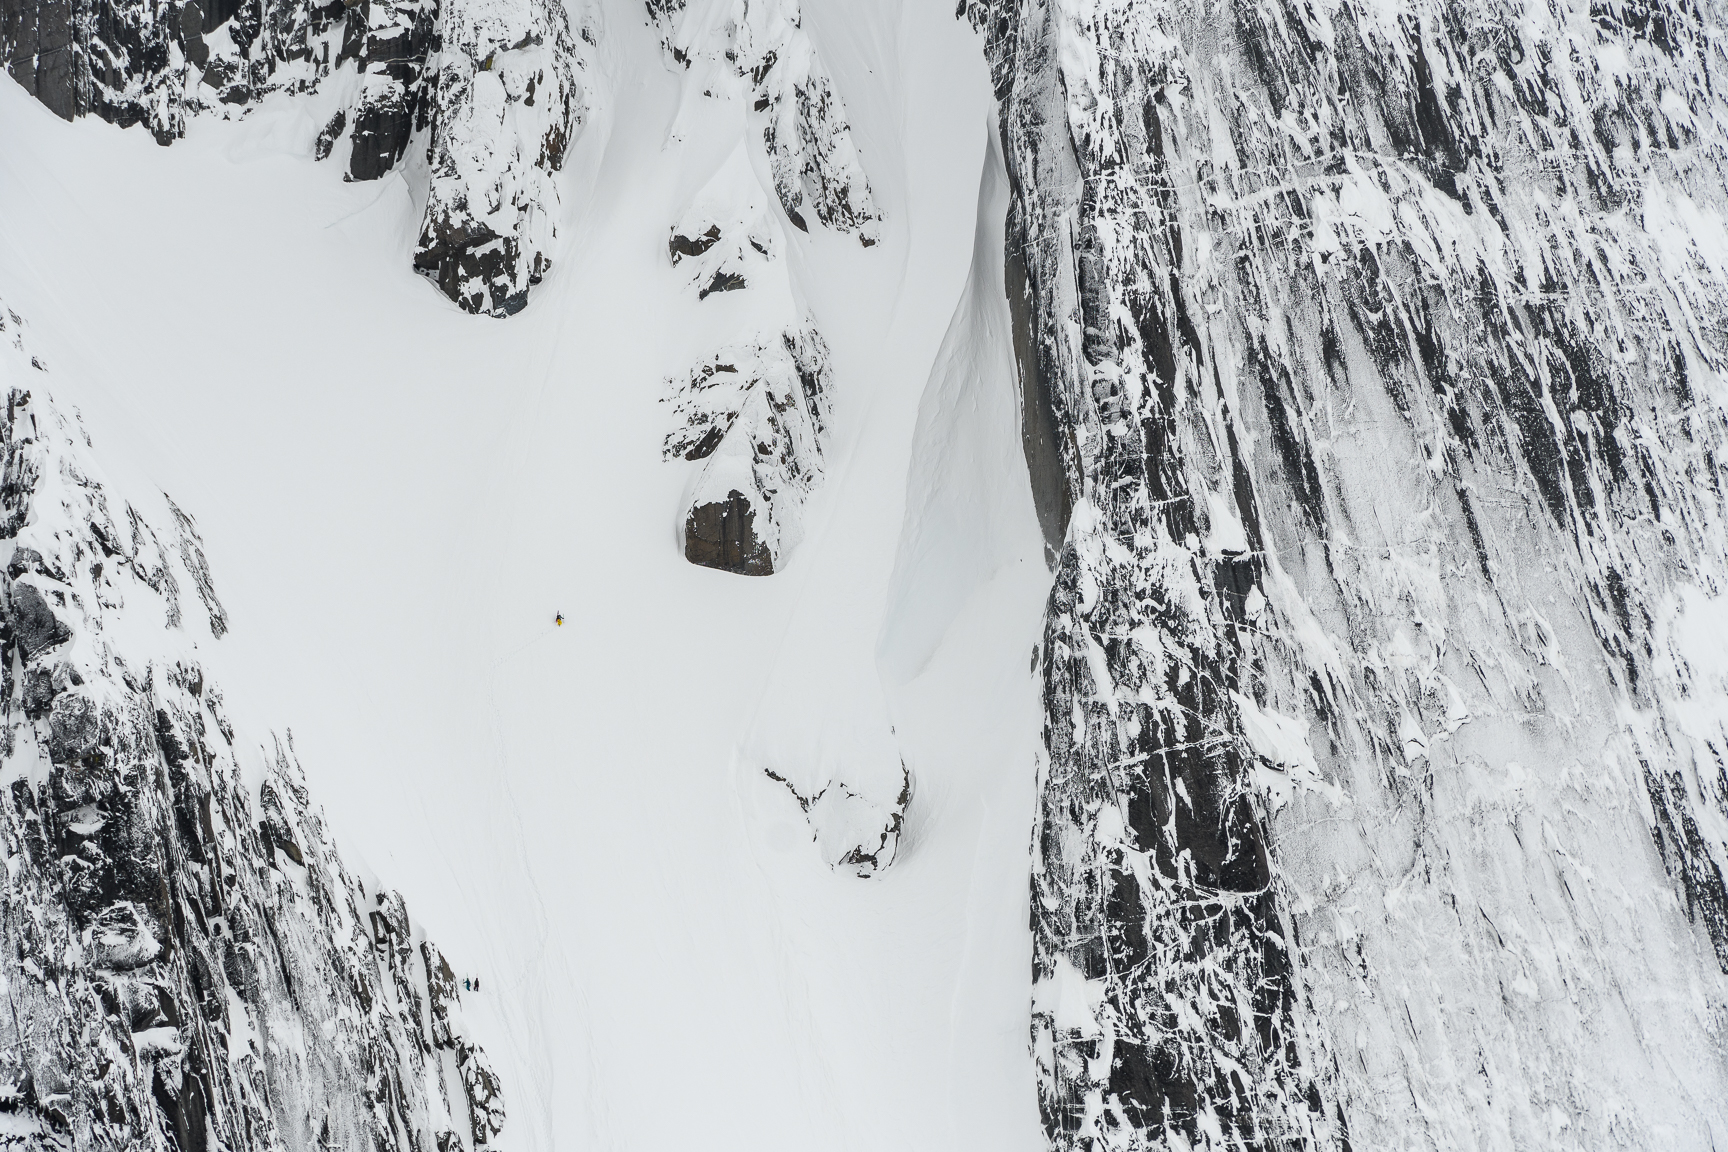 Tom dwarfed by the couloir - copyright Fred Marmsater